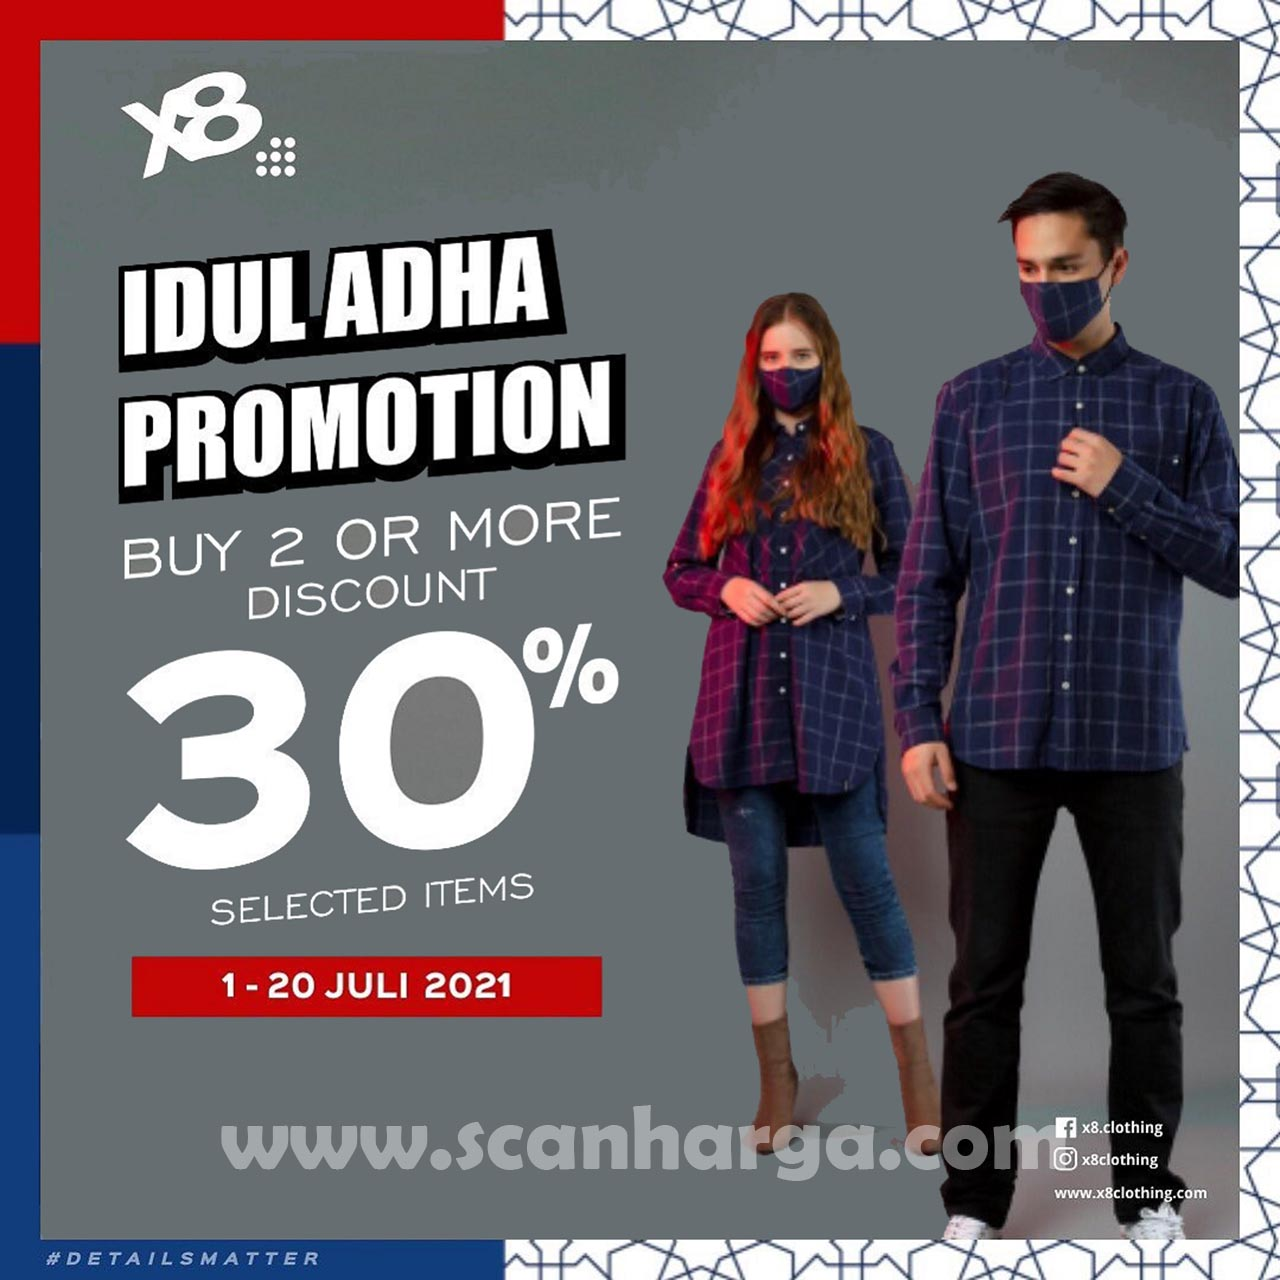 X8 Clothing IDUL ADHA Promotion - Buy 2 or More Discount 30% Selected Item